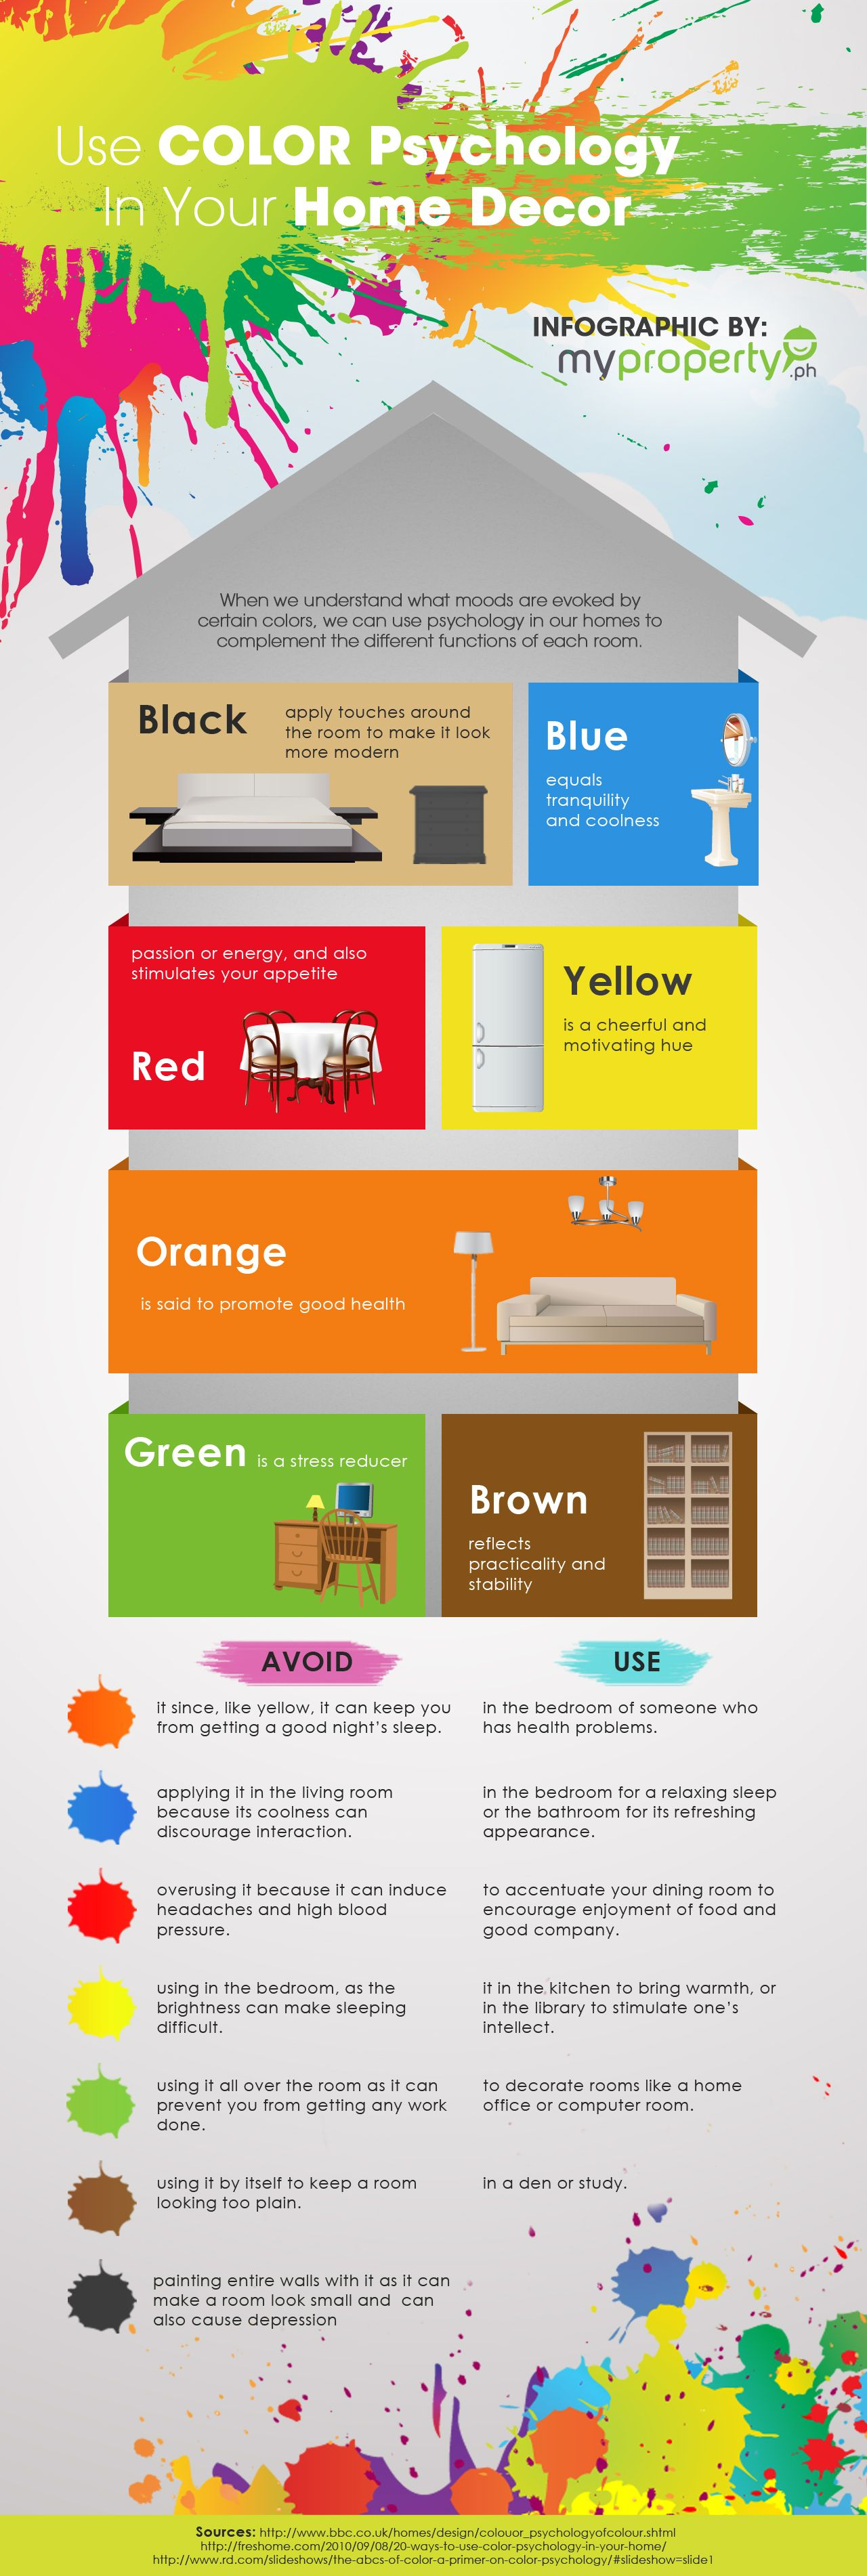 Marvelous Use Color Psychology In Your Home Decor. #RealEstate #Psychology  #UsesofColors